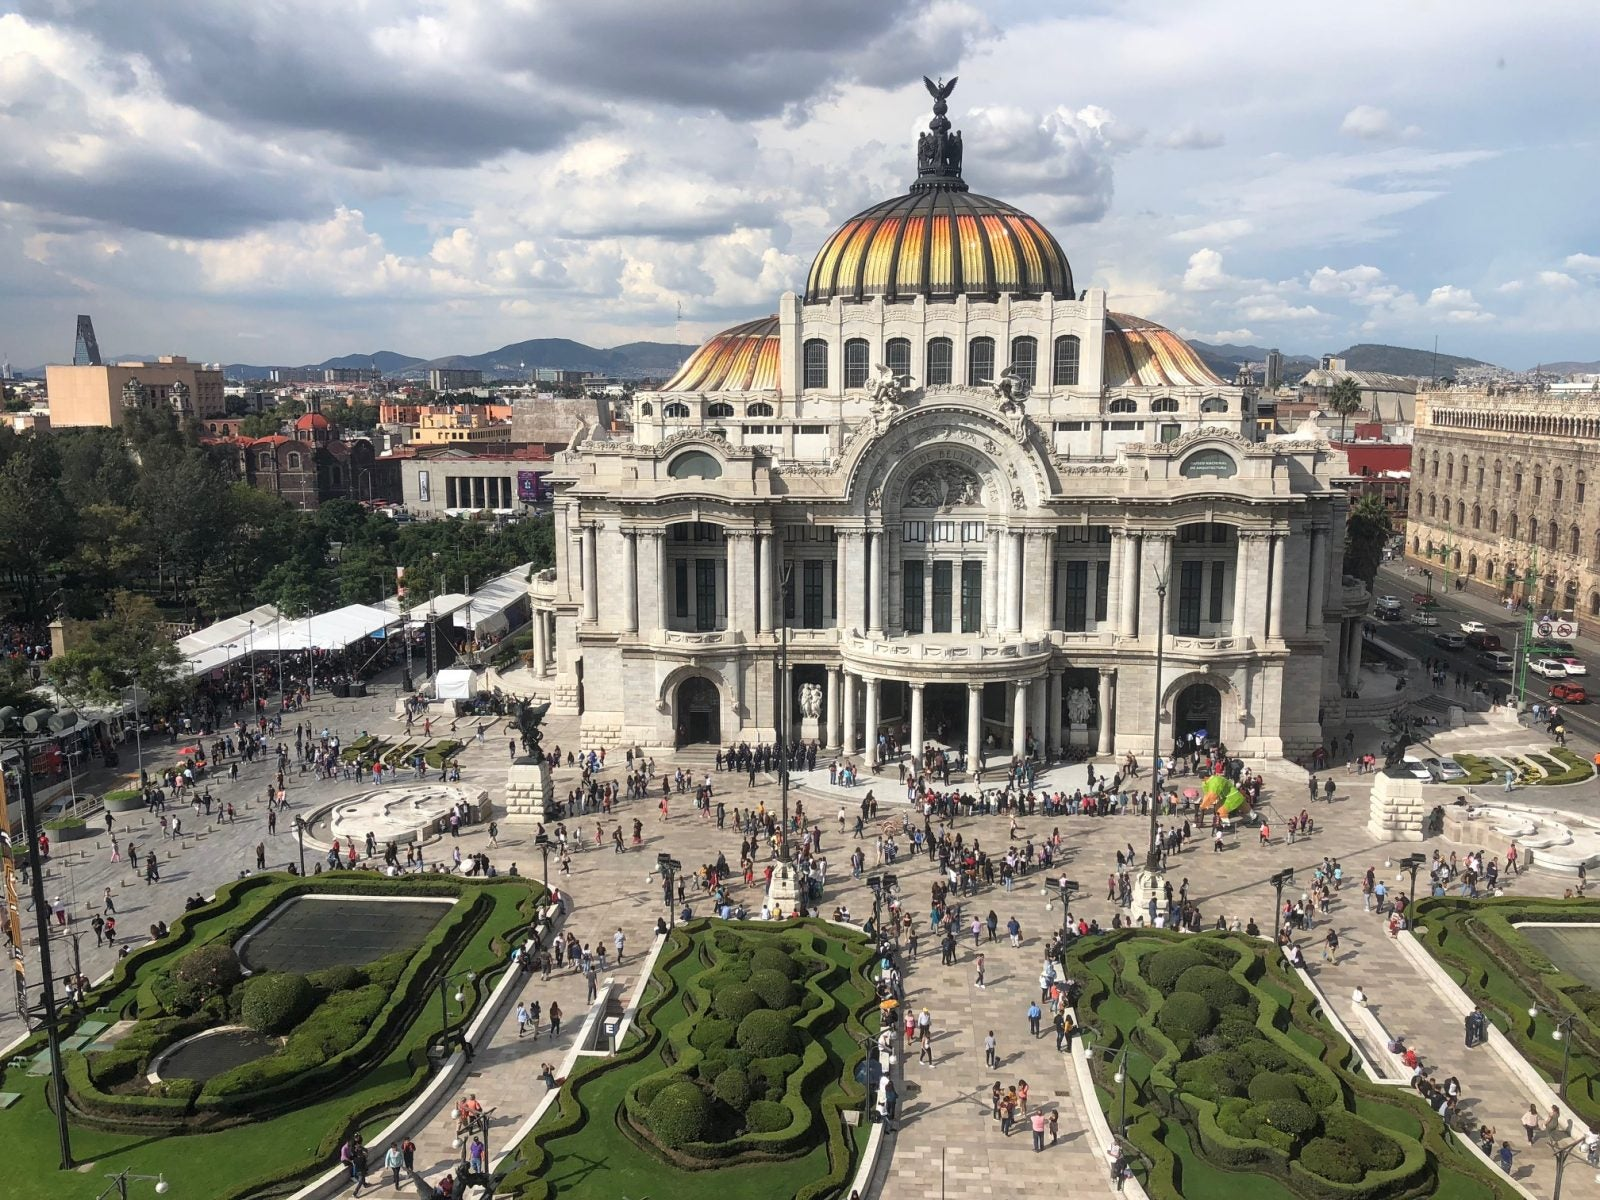 5 Days in Mexico City With My Chase Sapphire Reserve Card (No International Fees, Global Entry, 3X Points on Dining, and More!)